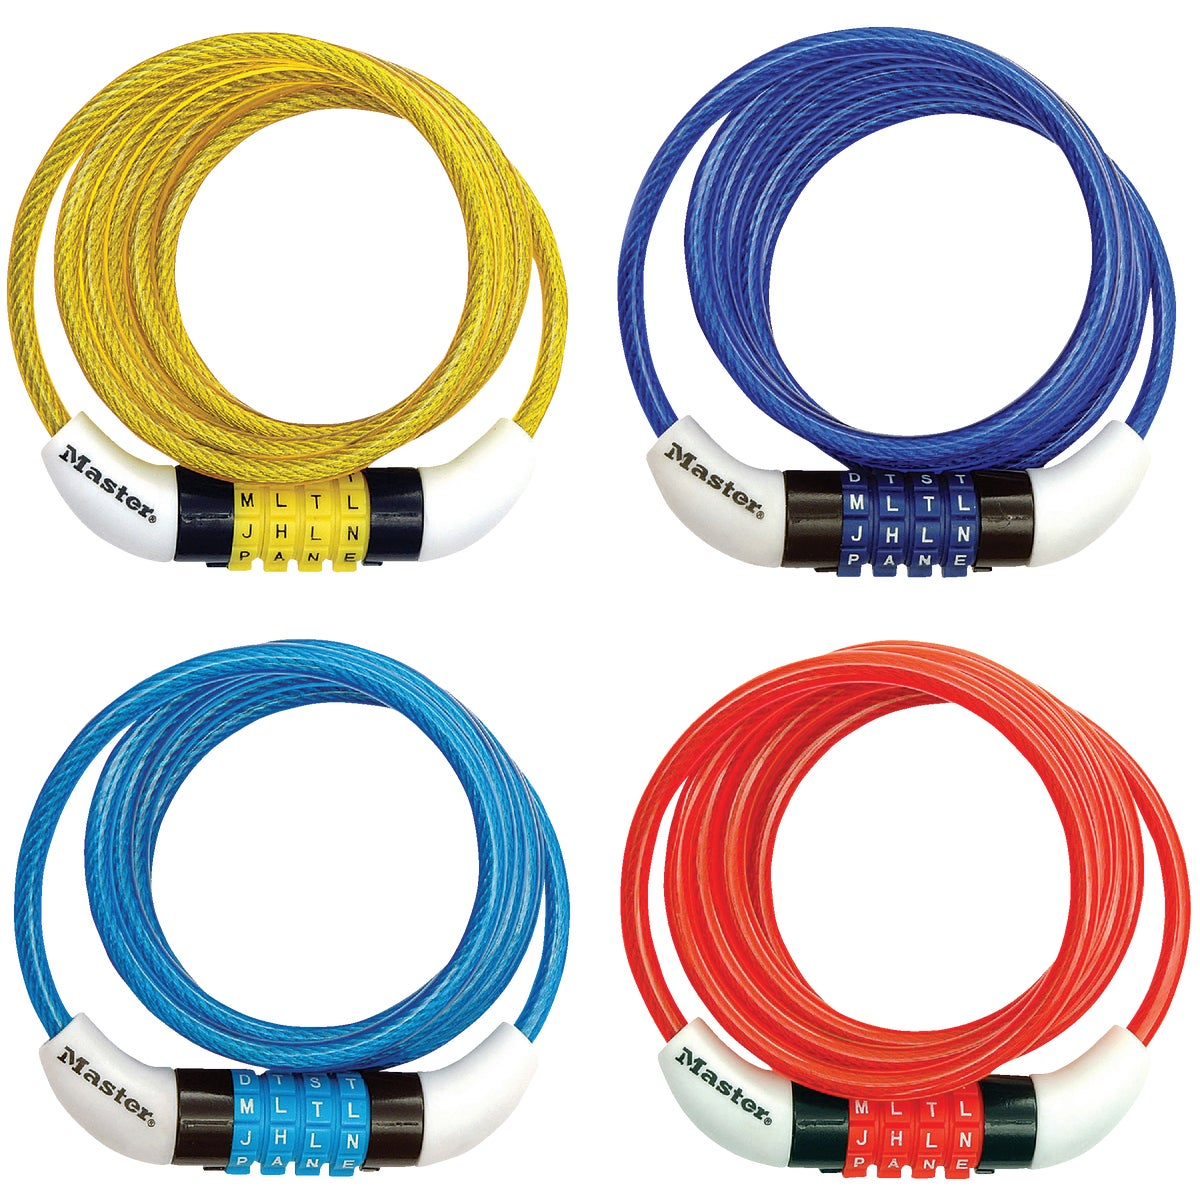 4' BLUE CABLE LOCK-WORD